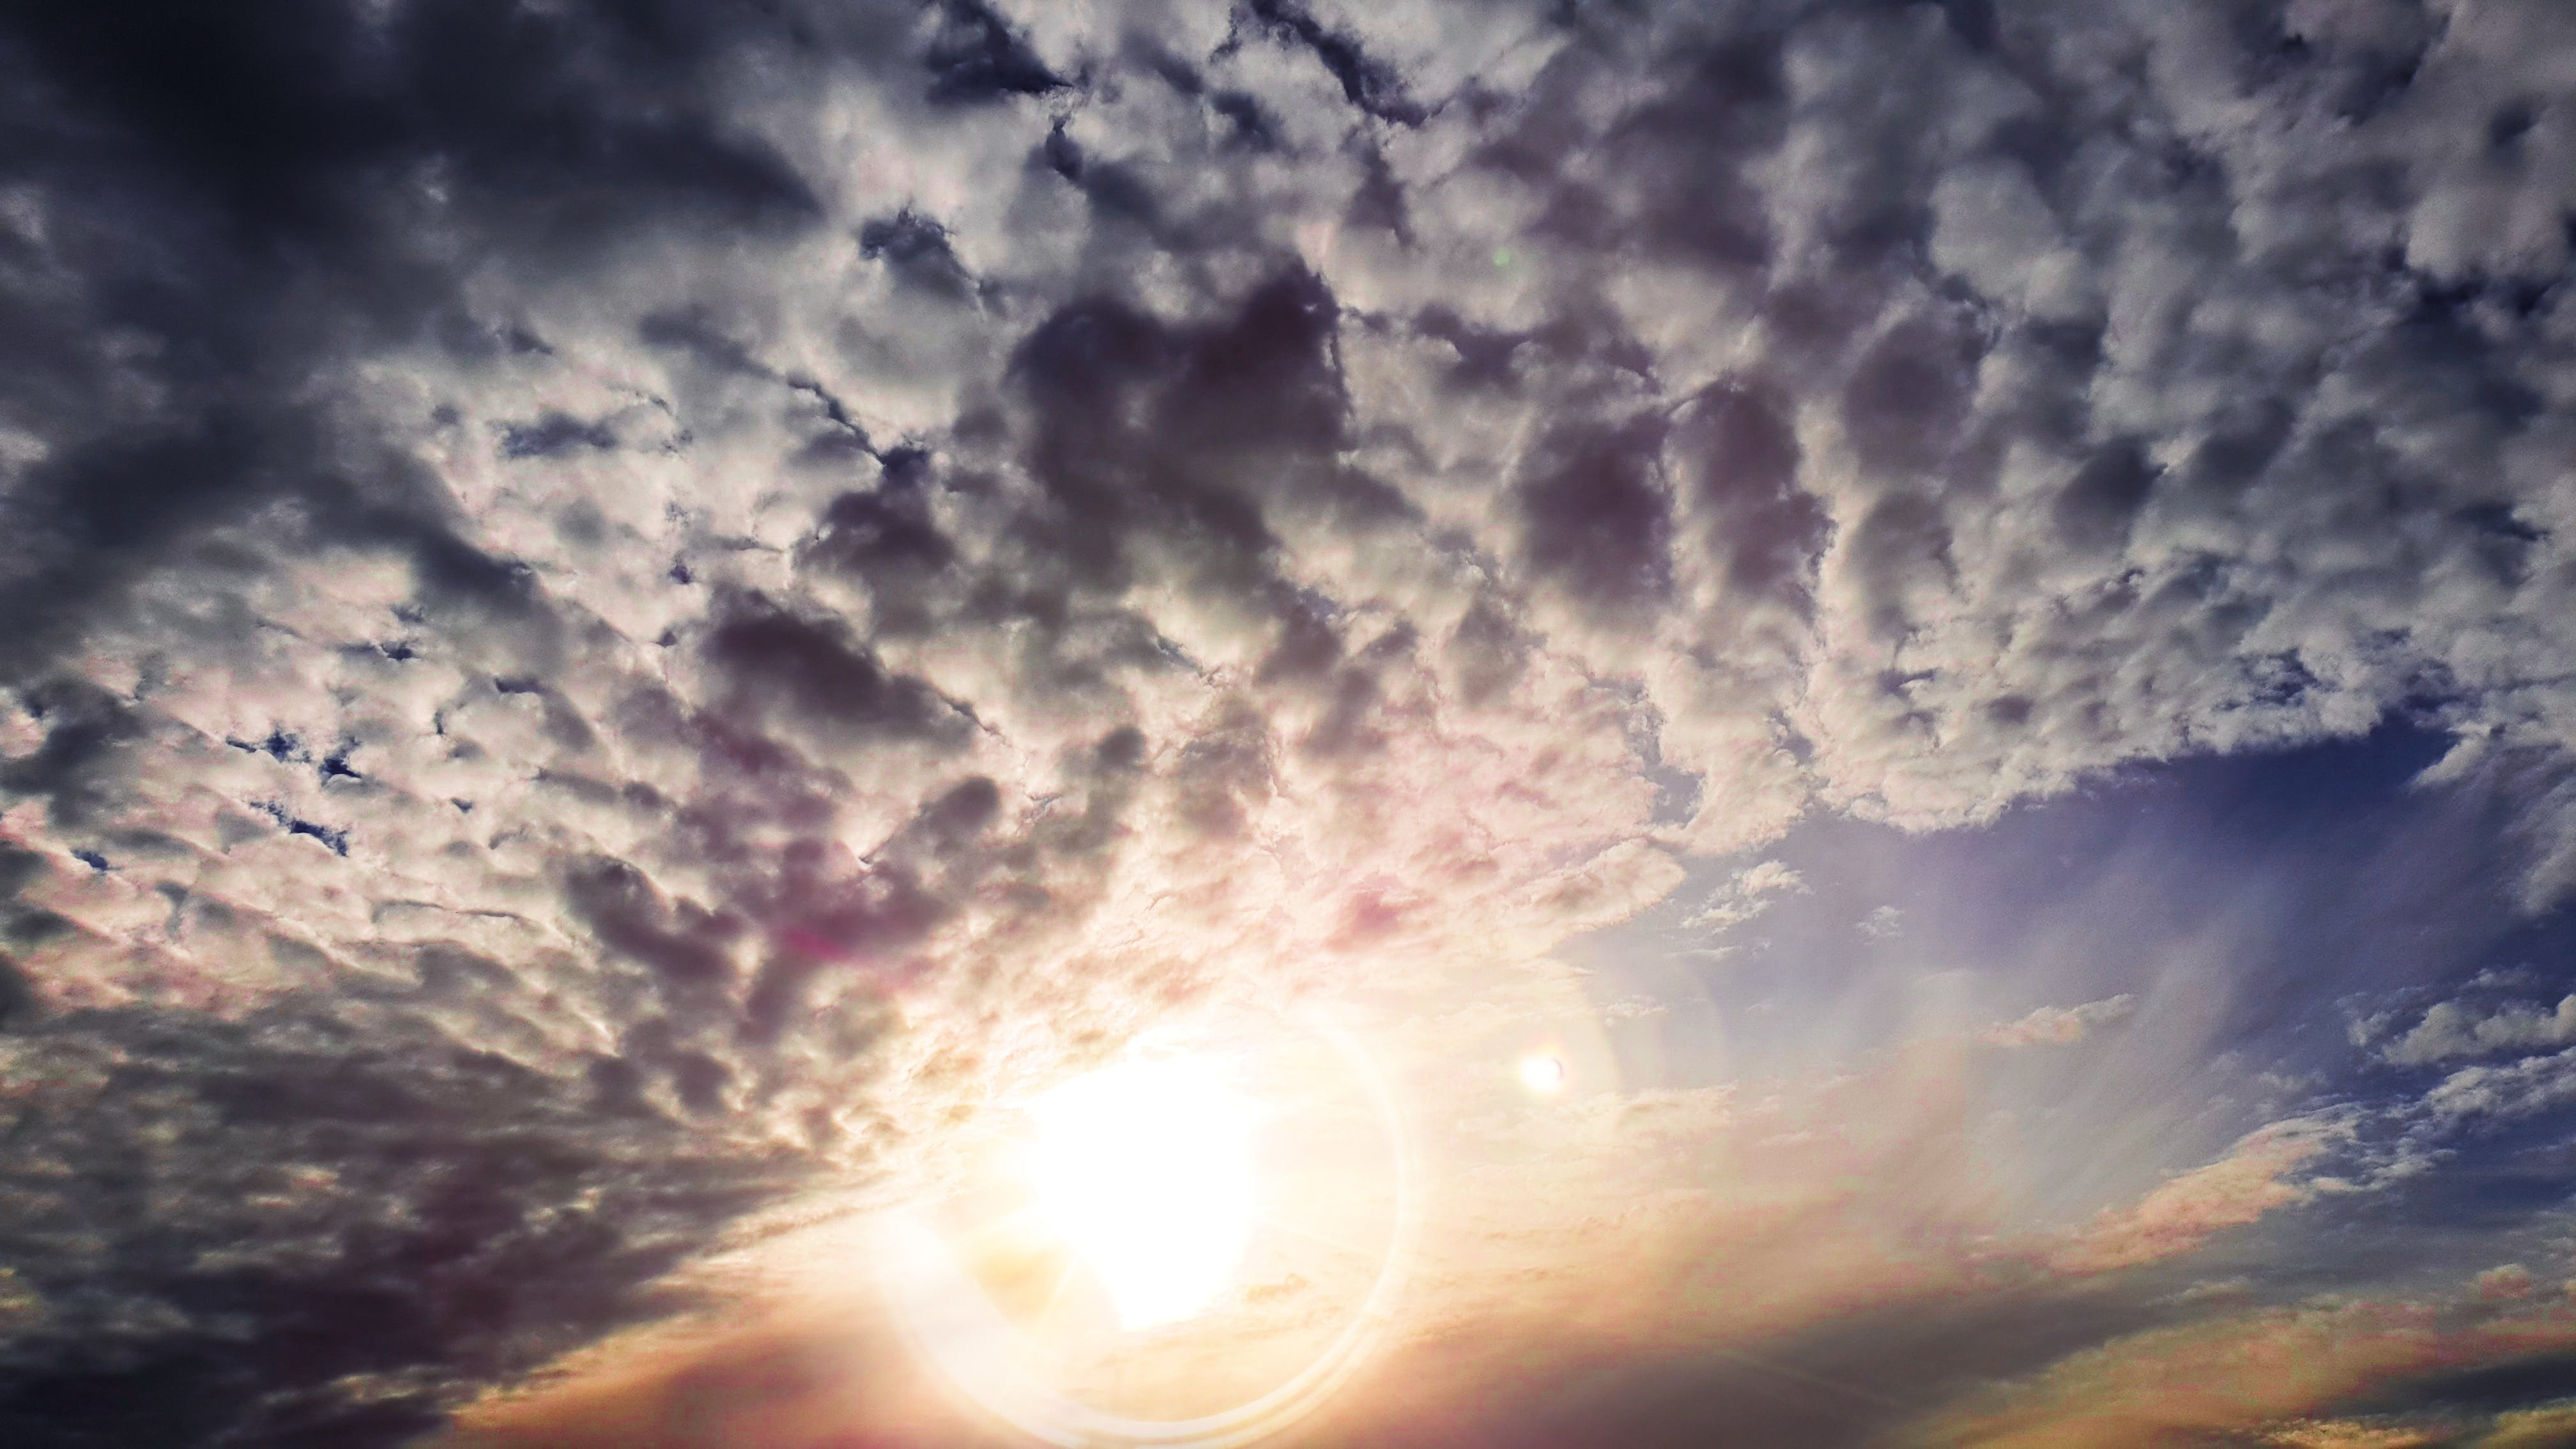 Free stock photo of sunset, clouds, cloudy, lens flare